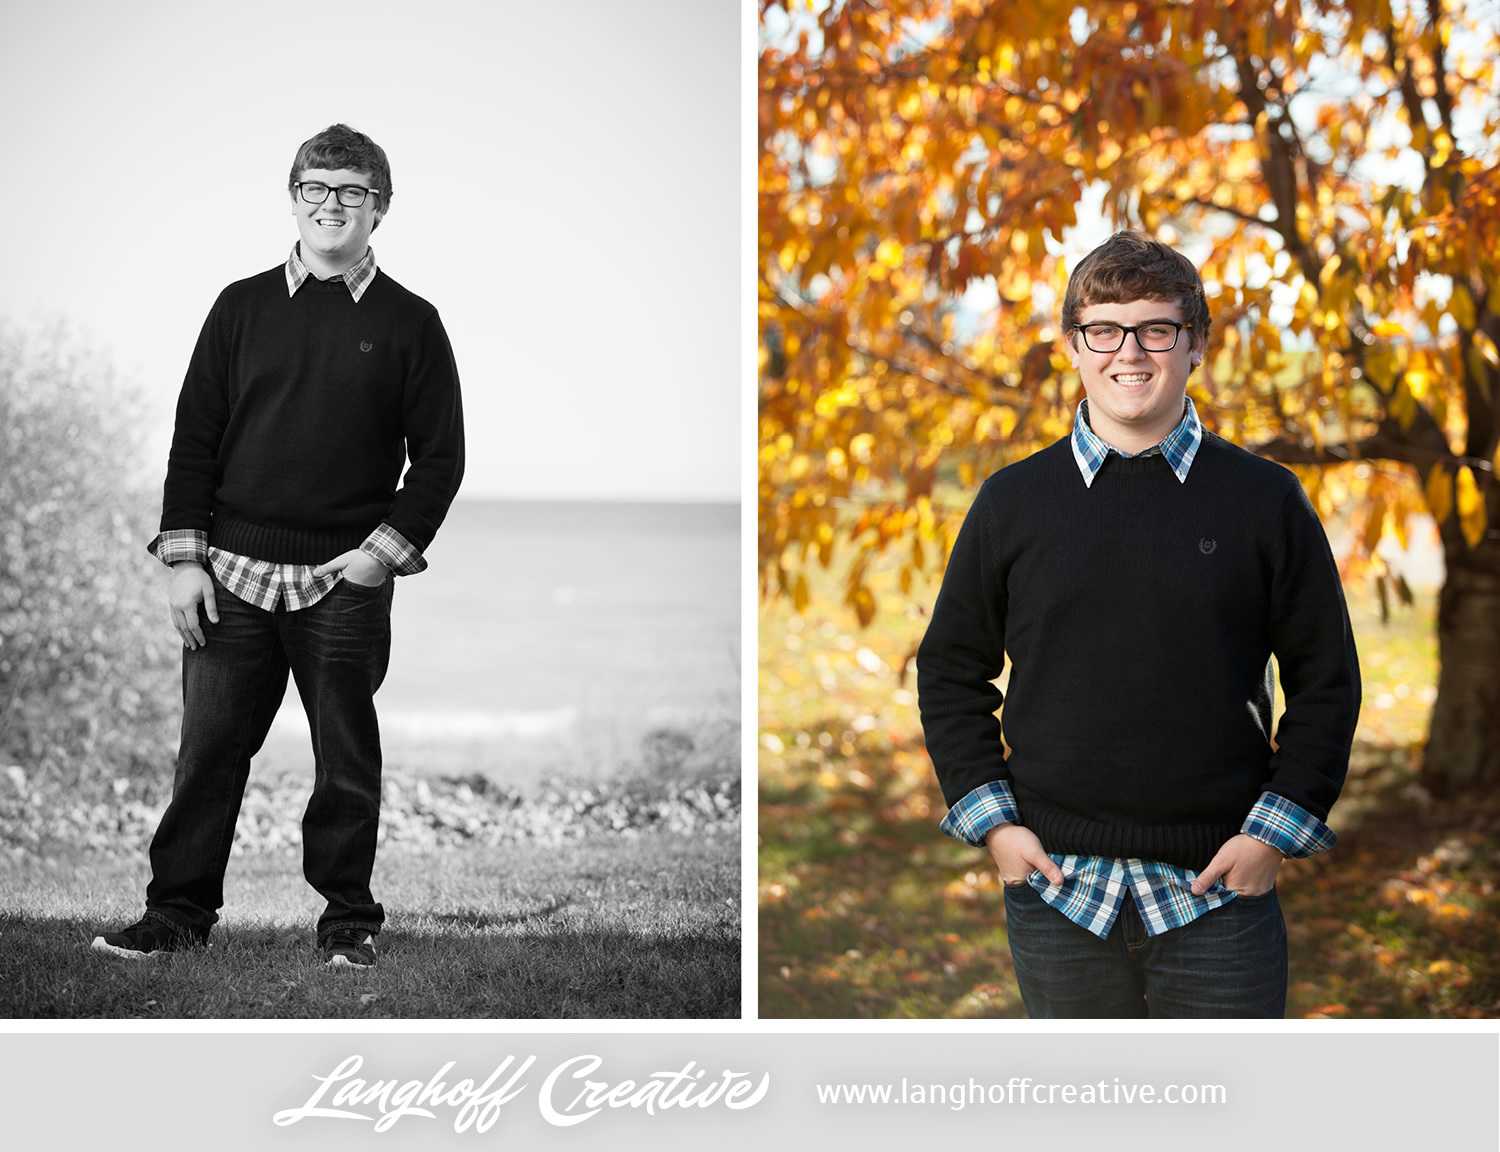 RacineSeniorPortraits-LanghoffCreative-2014-sneakpeek-Joey-photo.jpg